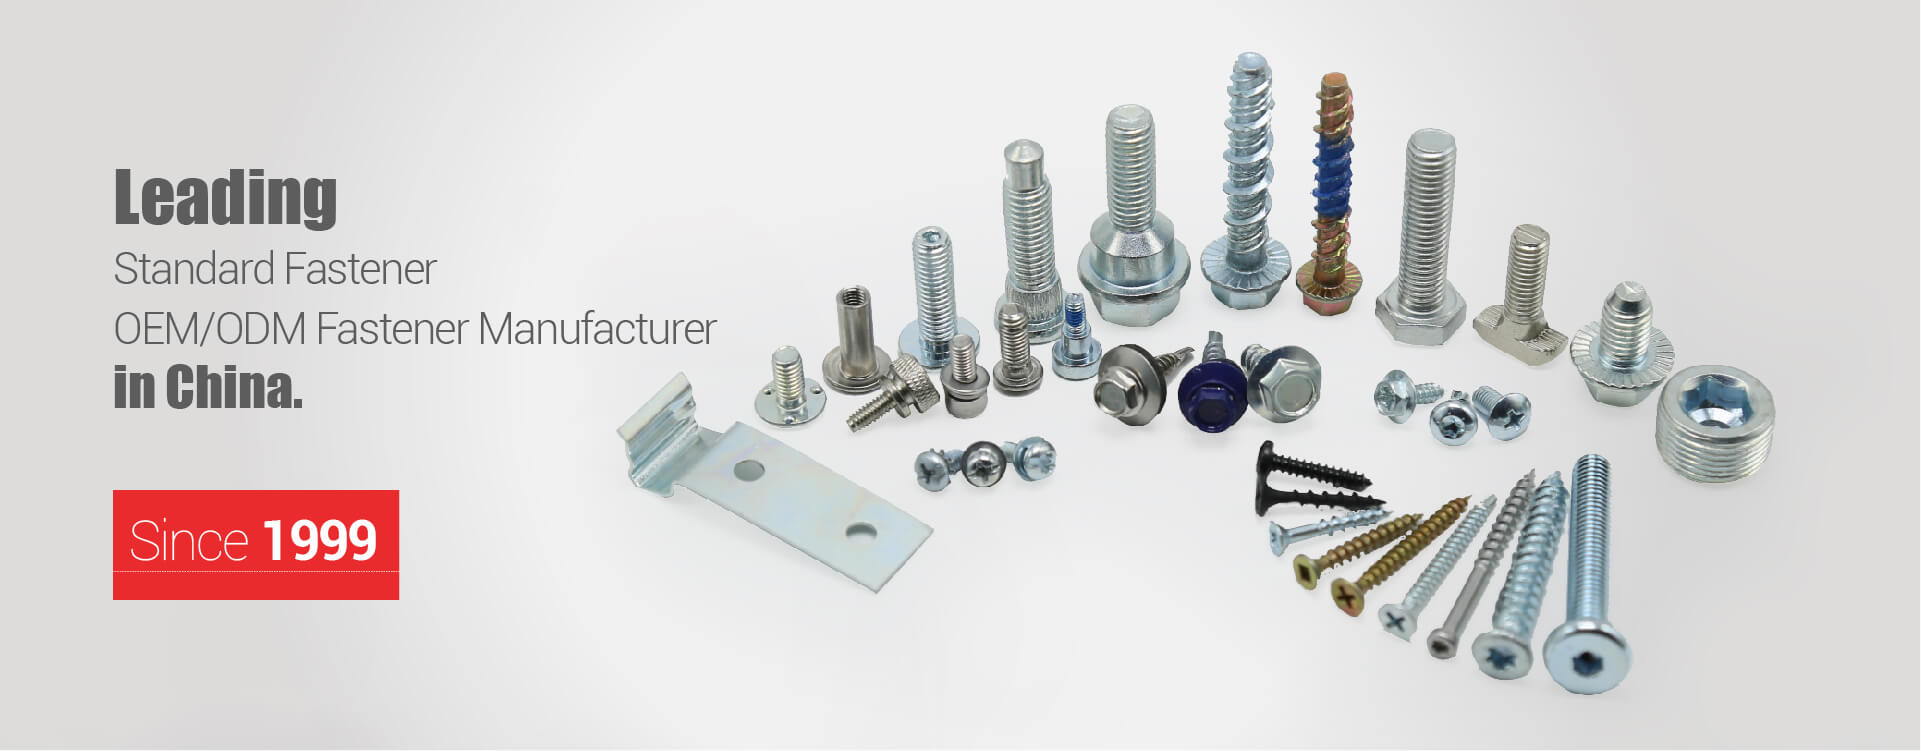 Leading Standard Fastener & OEM/ODM Fastener Manufacturer in China. Since 1999 - OuKaiLuo